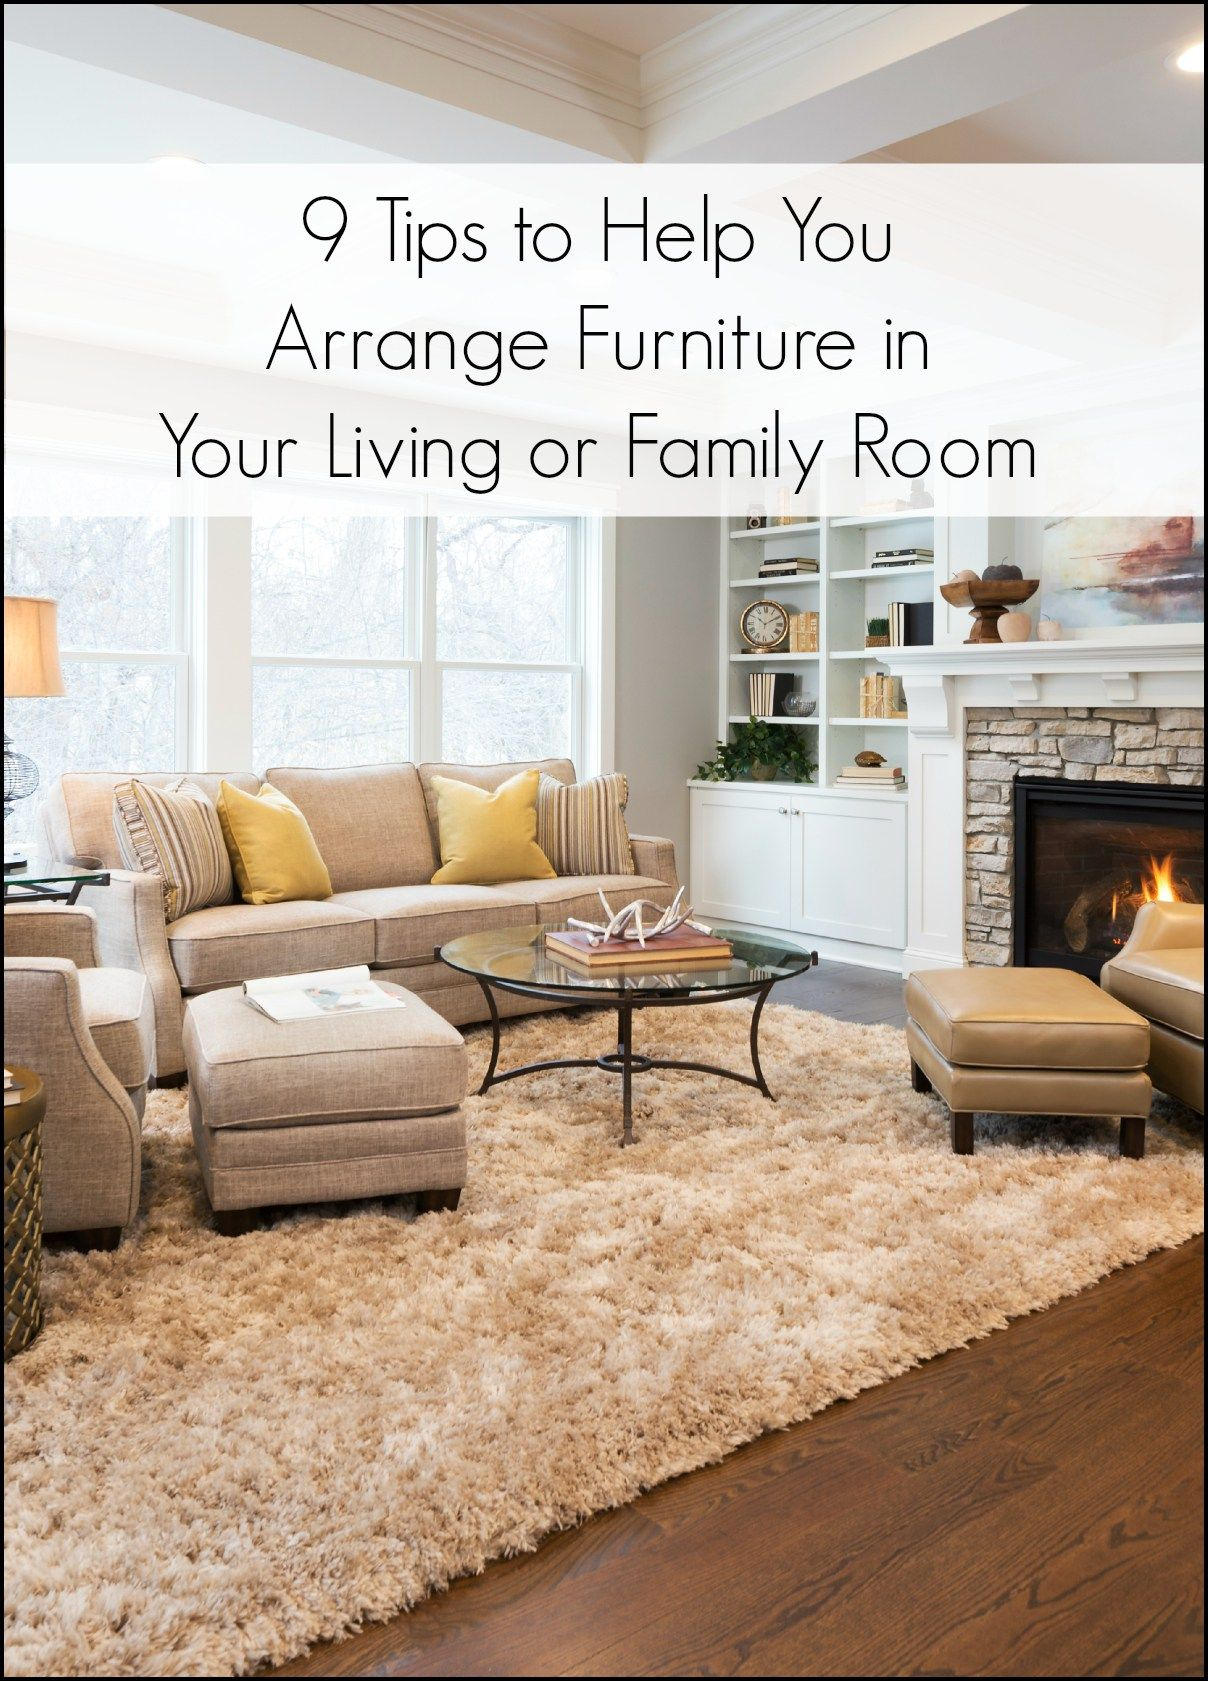 Merveilleux 9 Tips For Arranging Furniture In A Living Room Or Family Room    Schneidermanu0027s {the Blog} | Design And Decorating